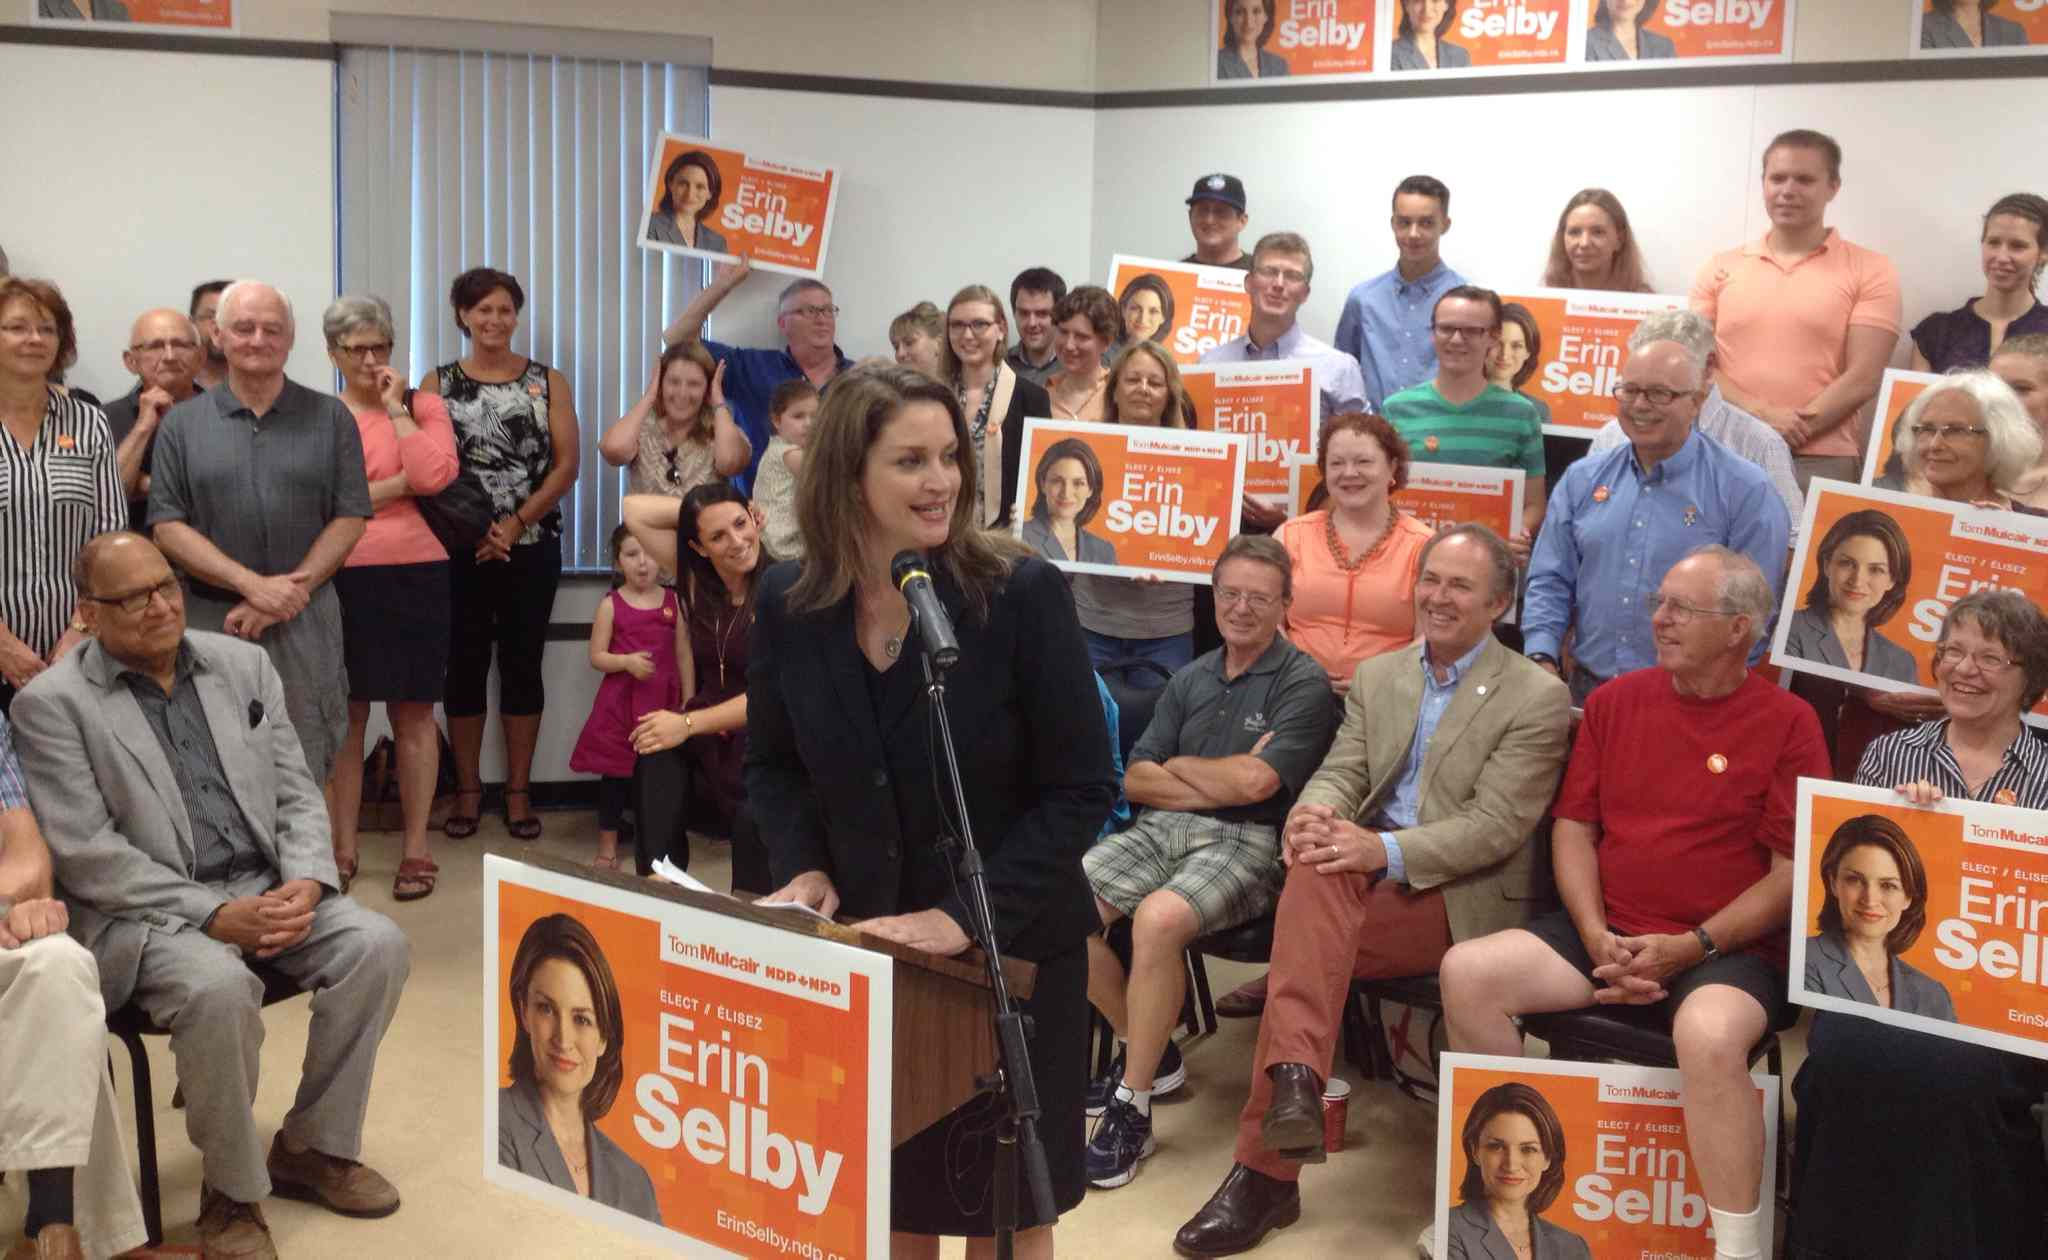 Erin Selby announced Friday morning she will be the federal NDP candidate in St. Boniface-St. Vital at an event at the Glenwood Community Centre.